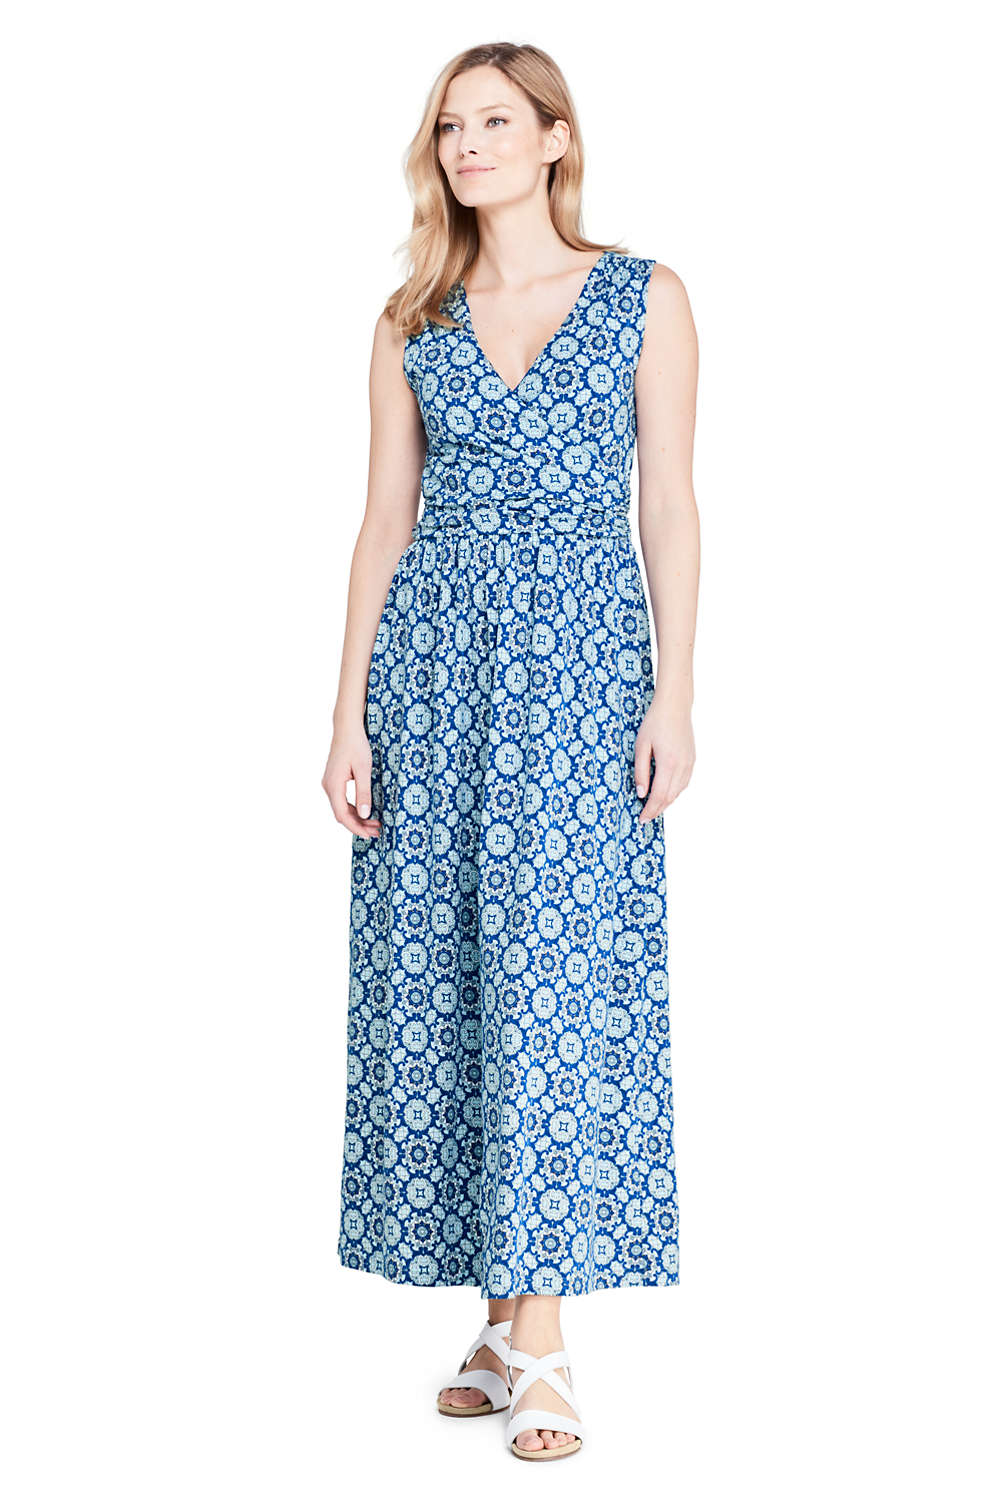 900fa46bb43 Womens Petite Summer Maxi Dresses - Data Dynamic AG